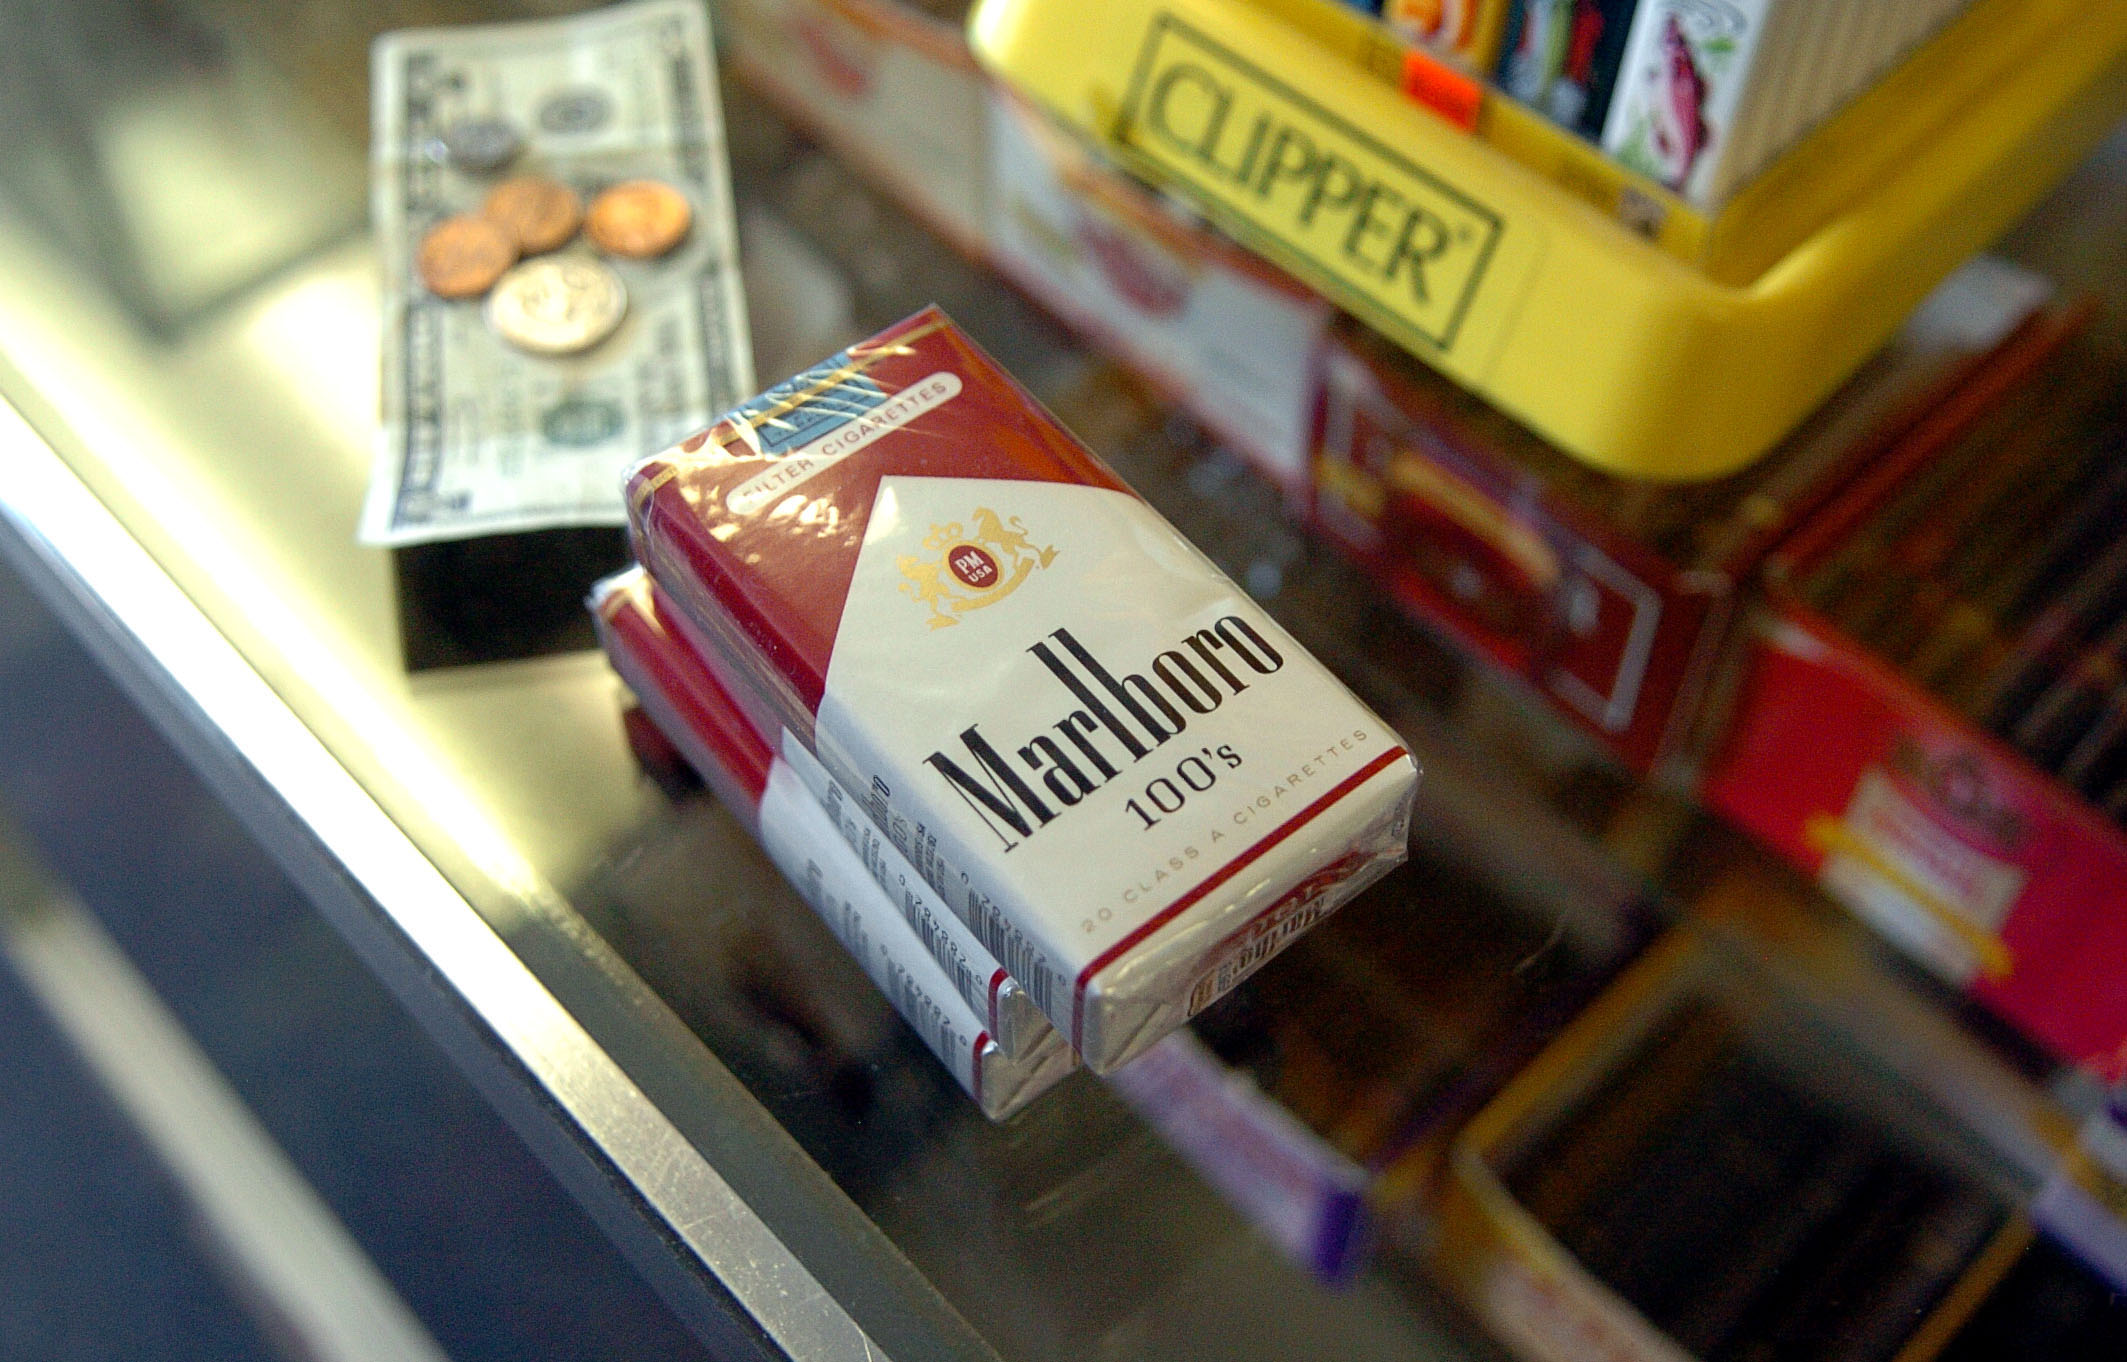 How much does a carton of cigarettes Marlboro cost in Alaska